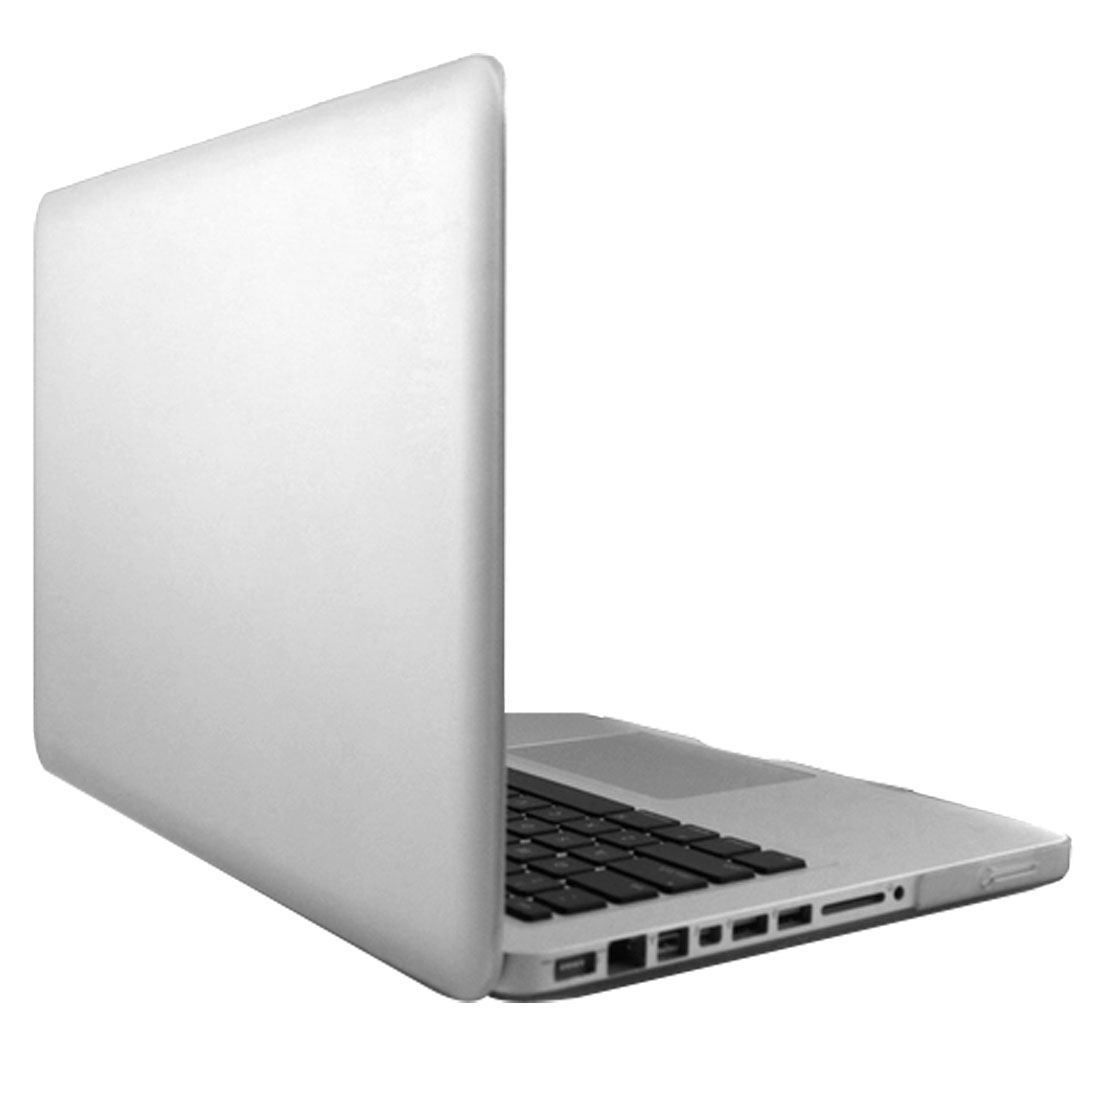 Home Office Laptop Plastic Hard Cover Protector Clear for Macbook Pro 15 Inch